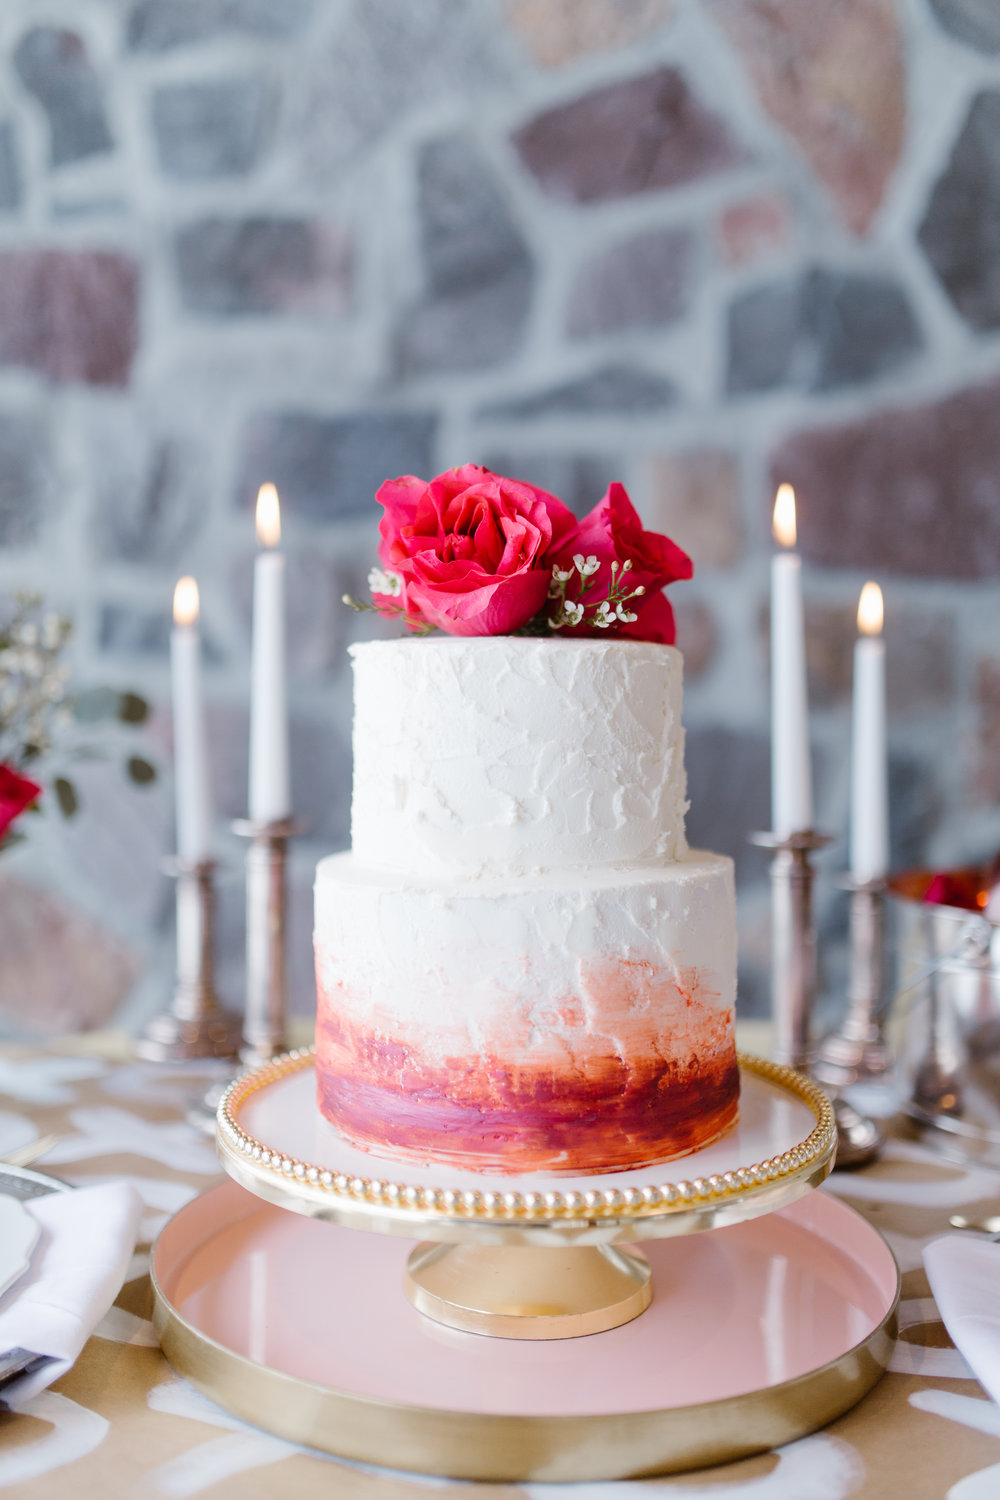 We obviously had to have some sweets for our Valentine's Day shoot!  Cakes by Jenn  created a beautiful ombre cake that faded from red up to the lightest pink.